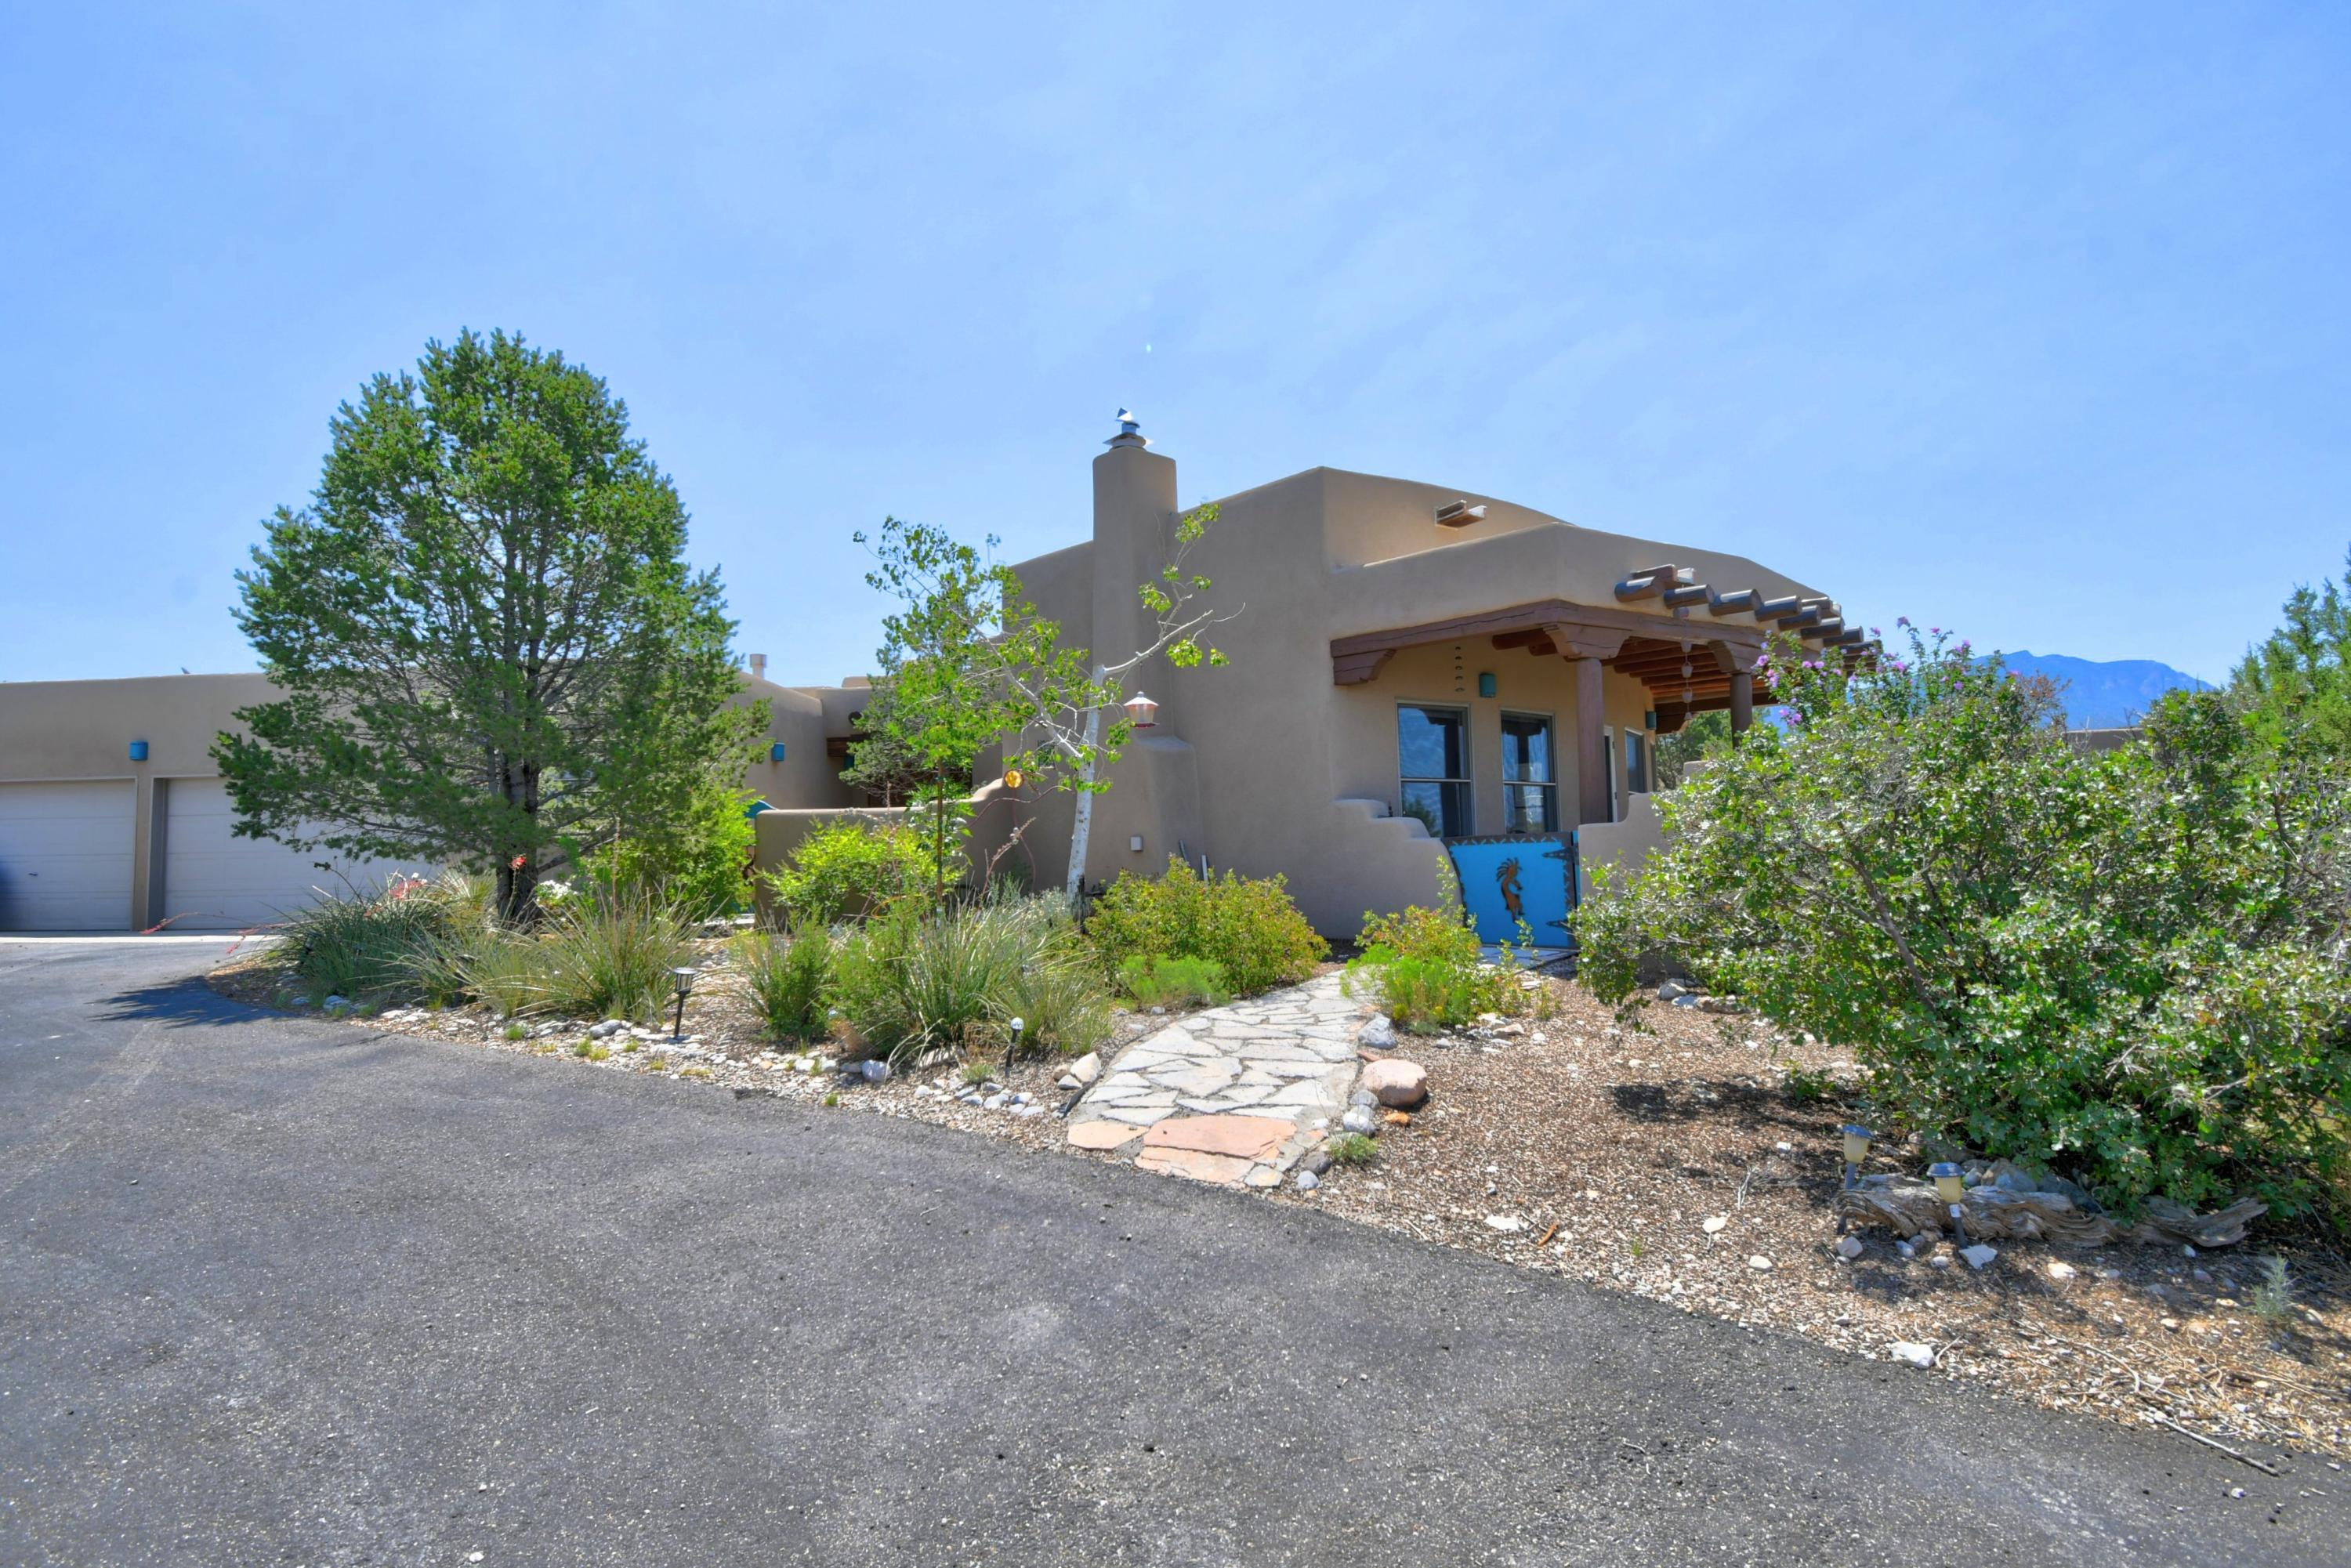 Two Master Suites make this stunning Santa Fe style home perfect for extended family. Incredible,expansive views for amazing sunsets!  Wonderful kitchen with dining room connected perfect for entertaining. Owners have made many great additions such as paving the driveway, newer roof 2017 and so much more! Placitas is known for its hiking and biking trails. Come see this beauty!